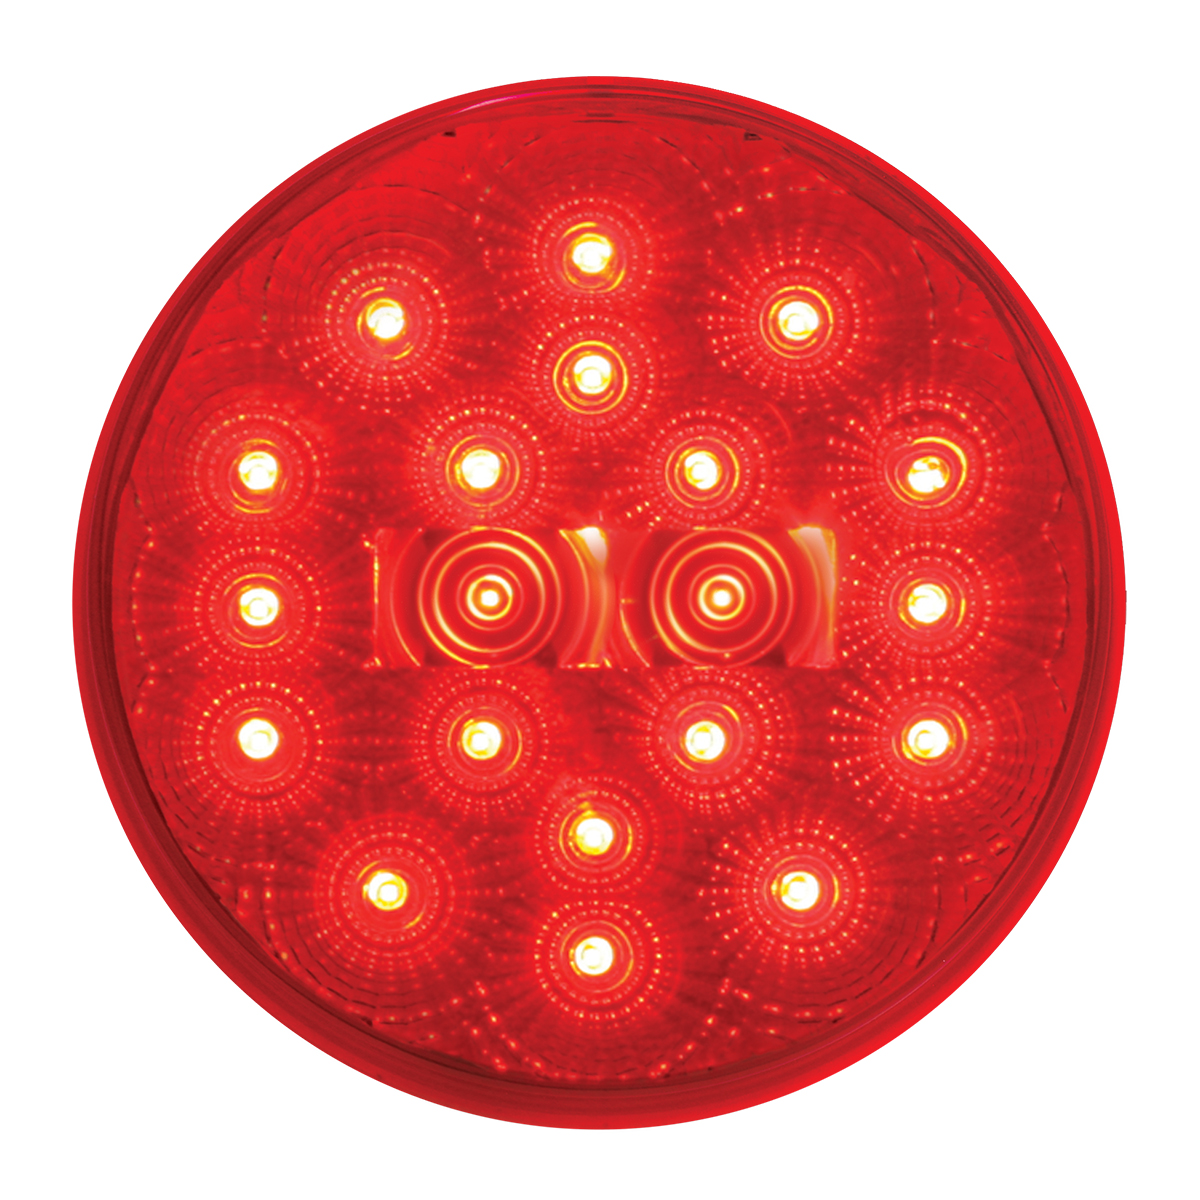 "#77093 - 4"" Round Spyder LED Flat Red/Red Light"